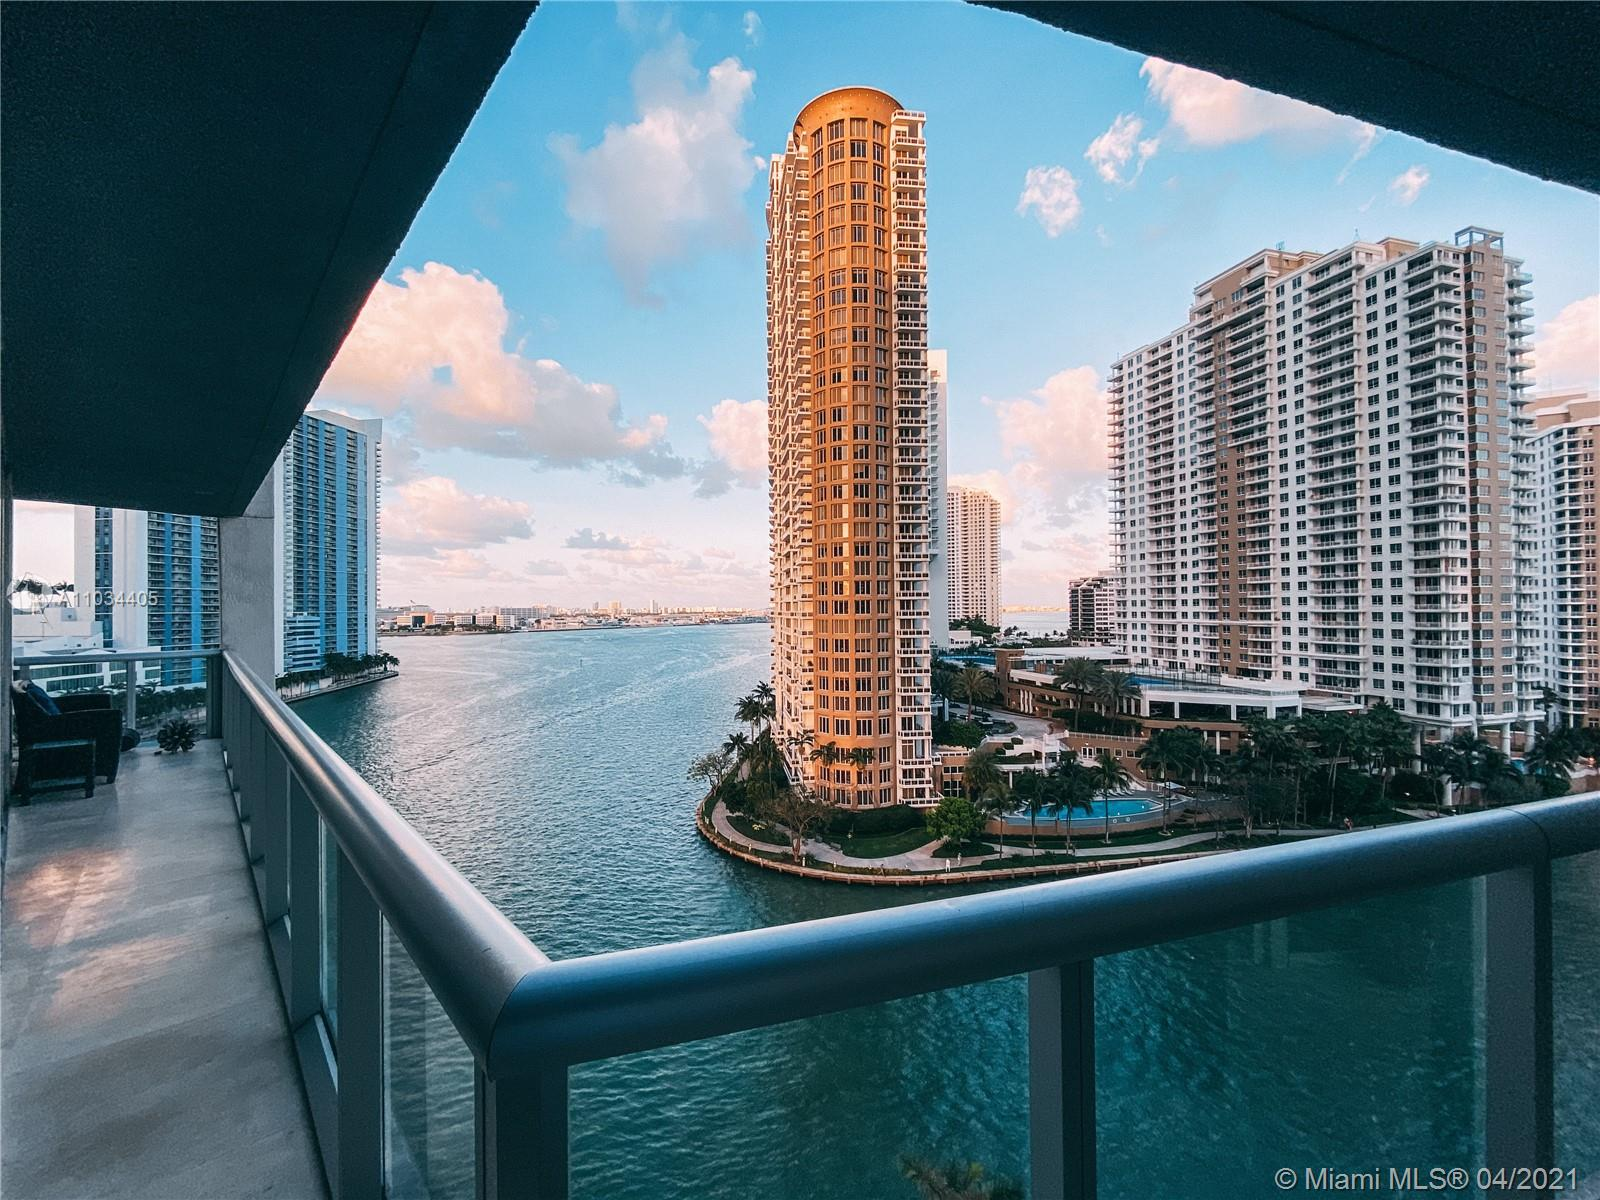 Located on the prestigious Brickell Avenue, at the intersection of Downtown Miami and Brickell. IconBrickell Towers 1, 2, and 3 unite Miami's urban metropolitan areas. Unit 1101 is located in the sought-after Tower 1. This condo consists of 3 bedrooms 2 1/2 bathrooms fully updated, offering an extended balcony due to its location as a corner unit. Enjoy the amazing view of both, the Miami Bay as well as the direct ocean view (see photos). This unit offers the convenience of the parking space being on the same floor as the unit. Tier 1 amentities include pool, gym, spa, billiards room, spinning room and two fine dining restaurants on ground level of the complex.